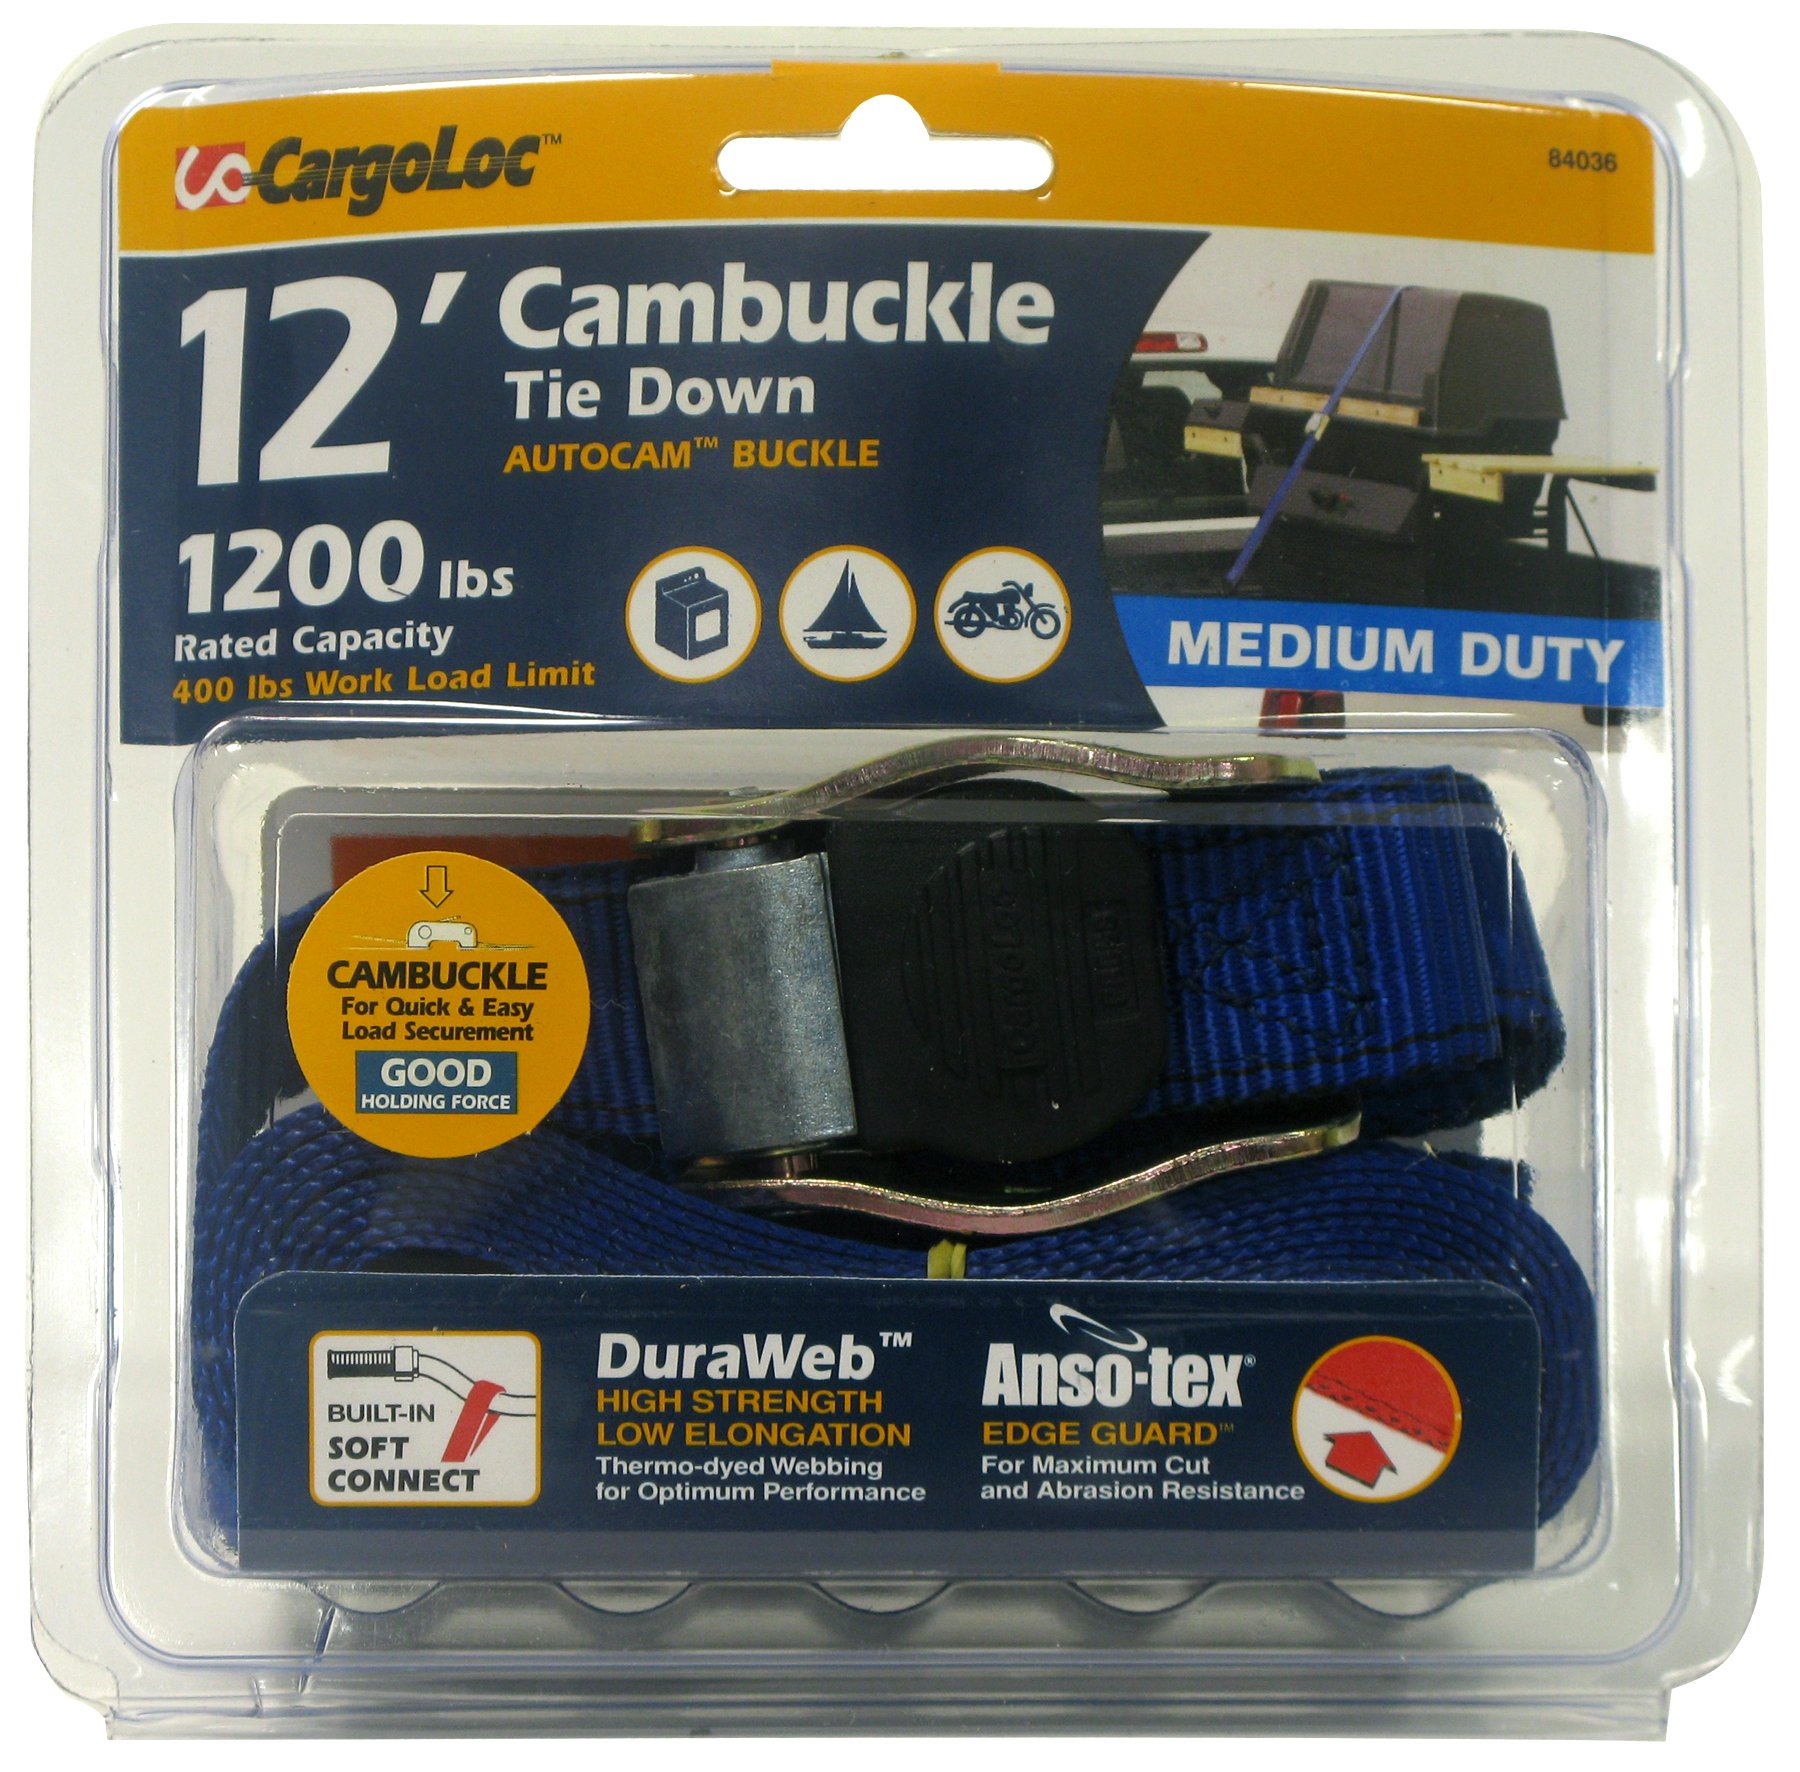 CargoLoc 84036 Cambuckle Tie Downs with S-Hooks, 1-Inch x 12-Inch